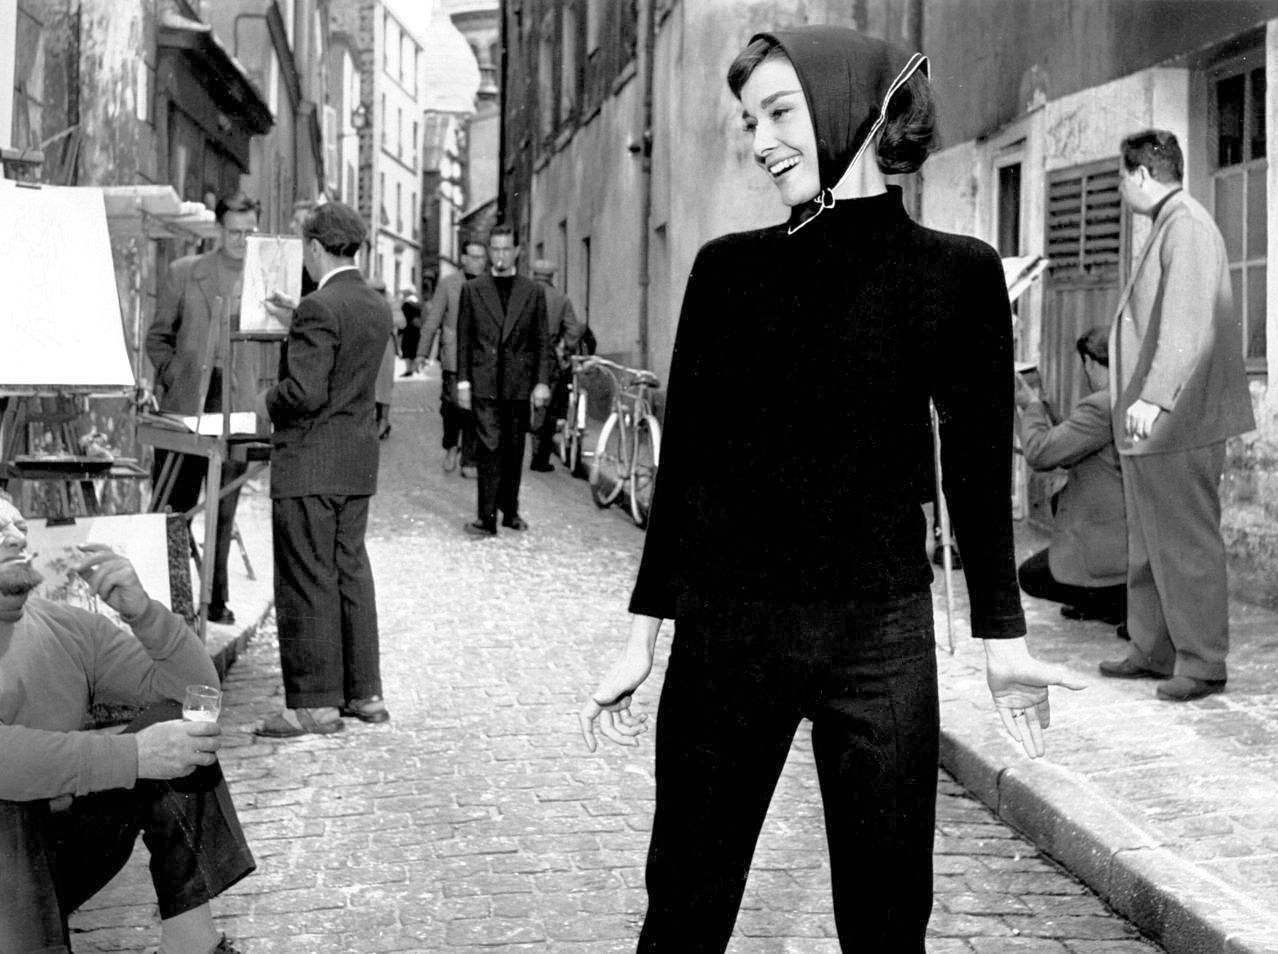 Audrey Hepburn in a production still from Funny Face (Stanley Donen, 1957)